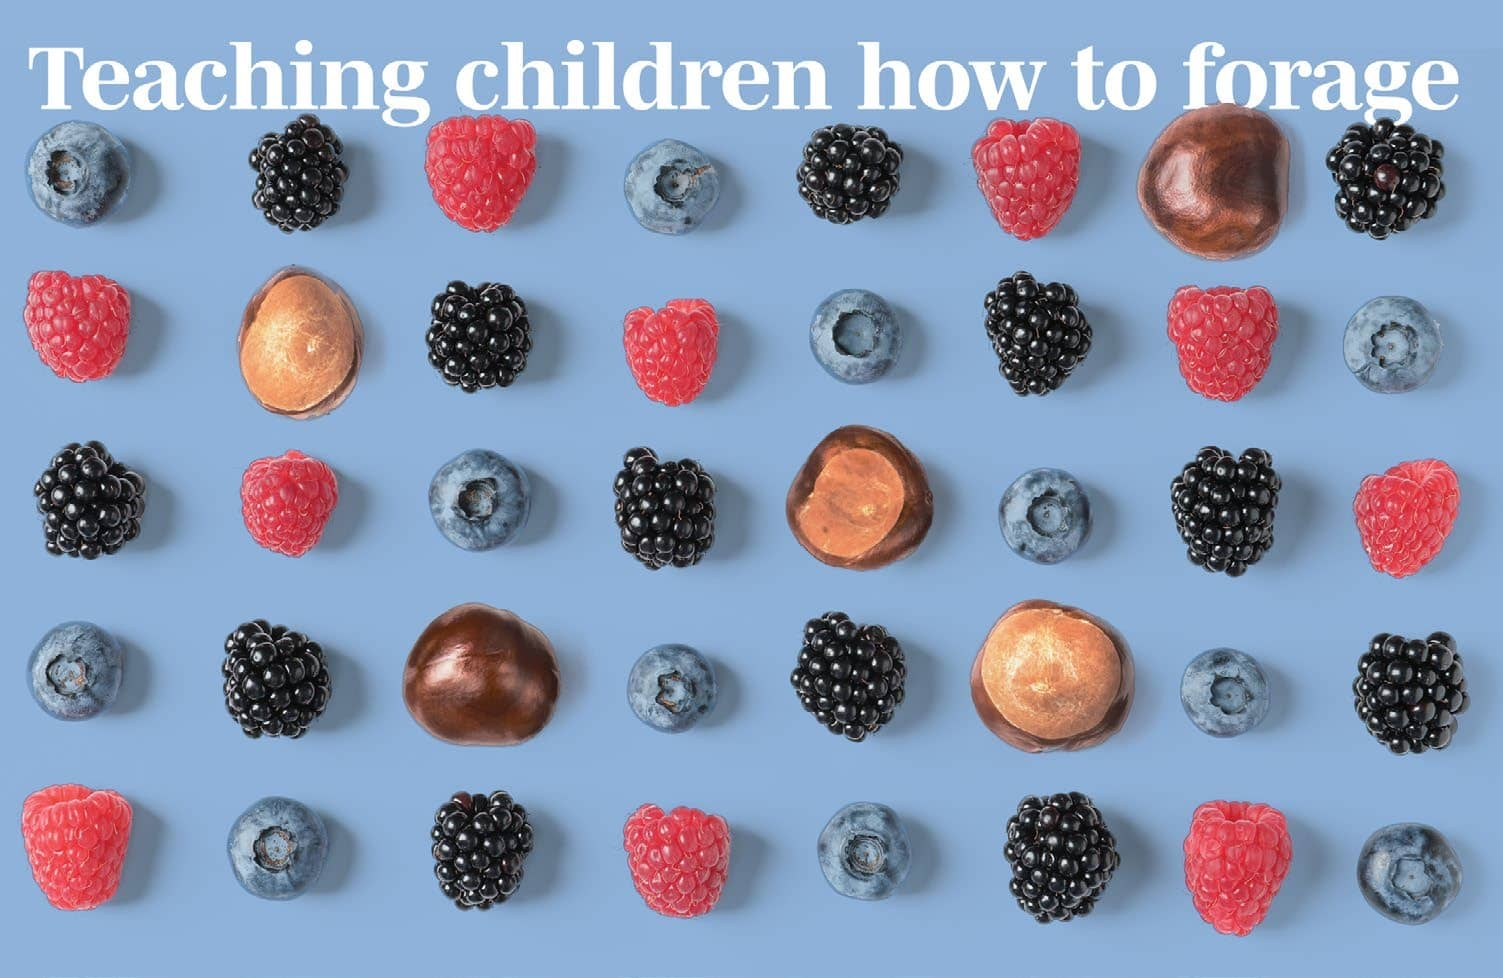 Teaching Children How To Forage